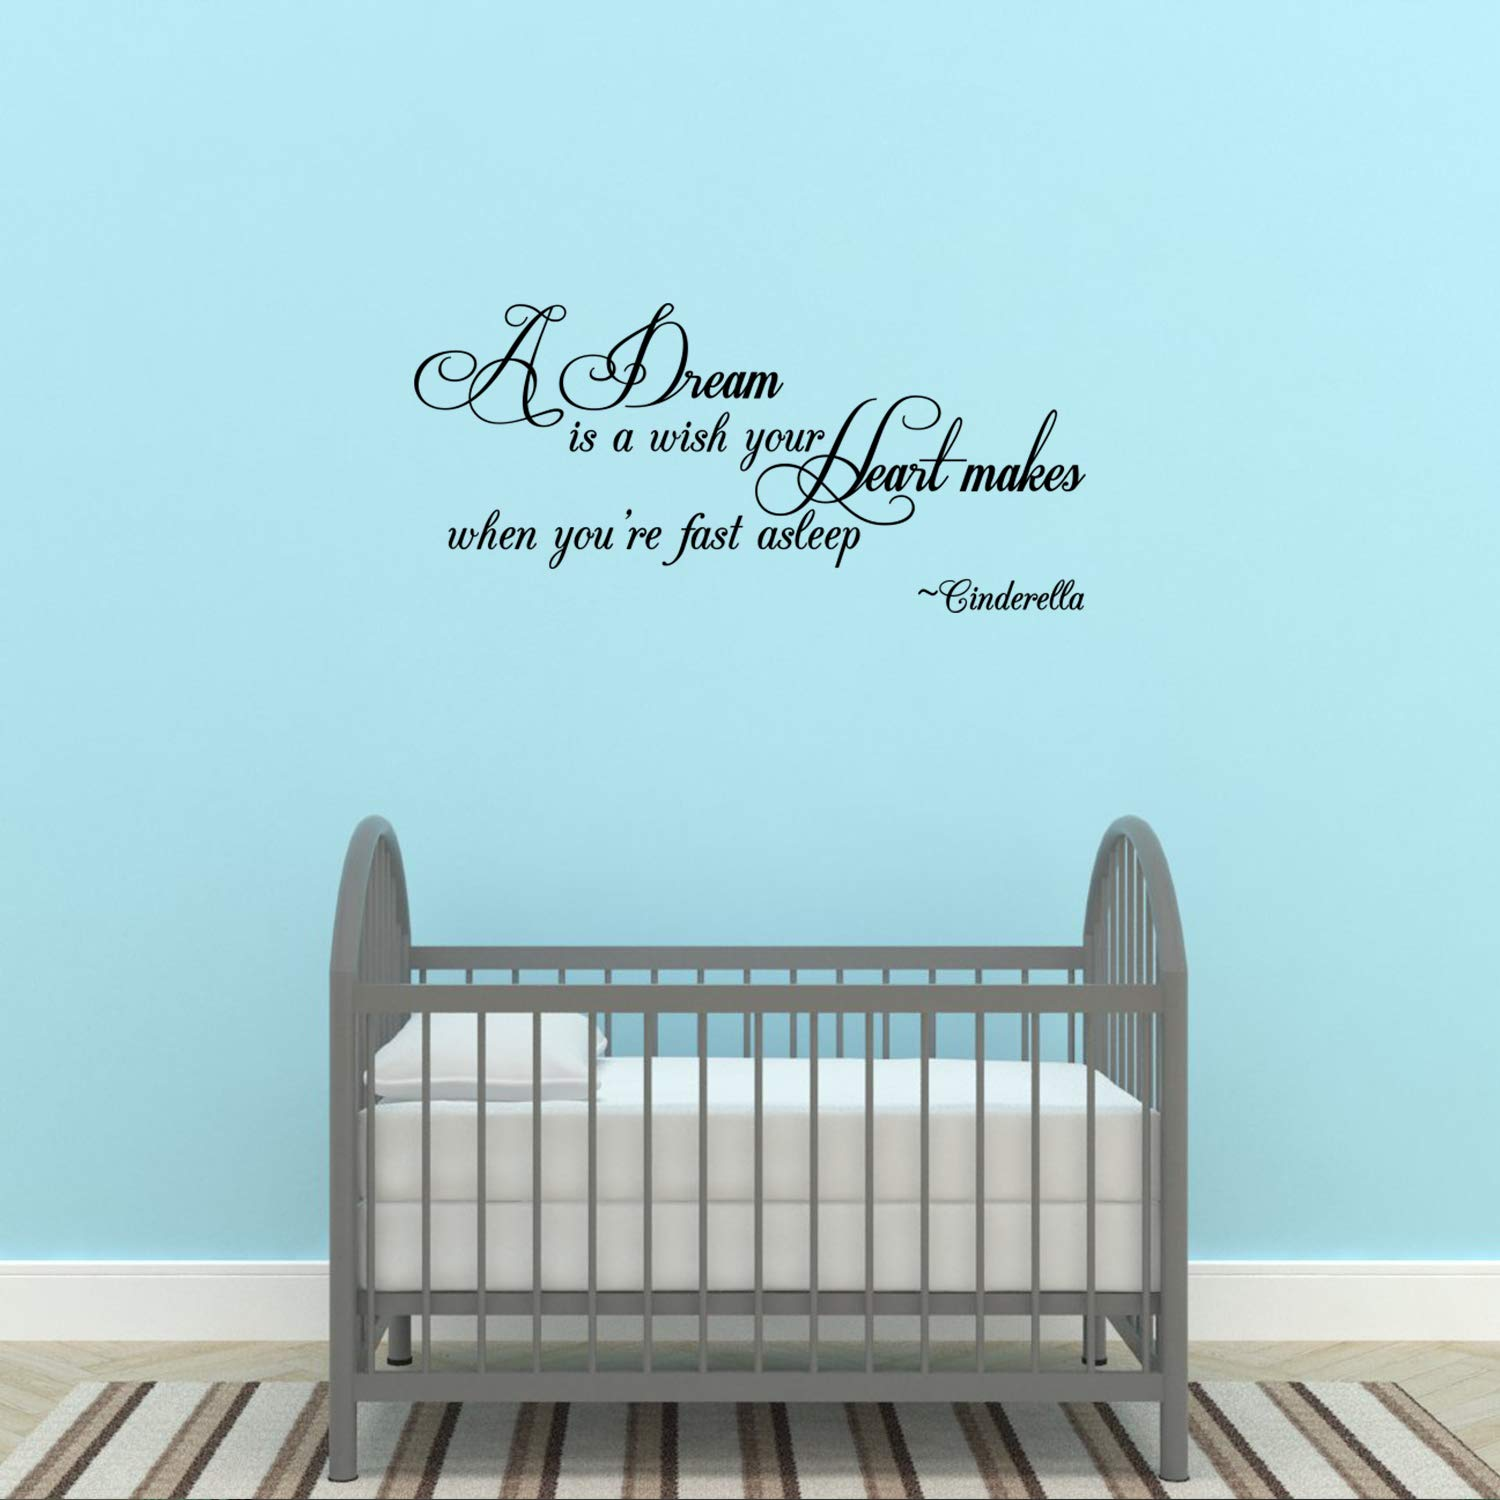 Empresal A Dream is a Wish Your Heart Makes When You're Fast Asleep -Cinderella Wall Quote Wall Decals Wall Decal Wall Sticker